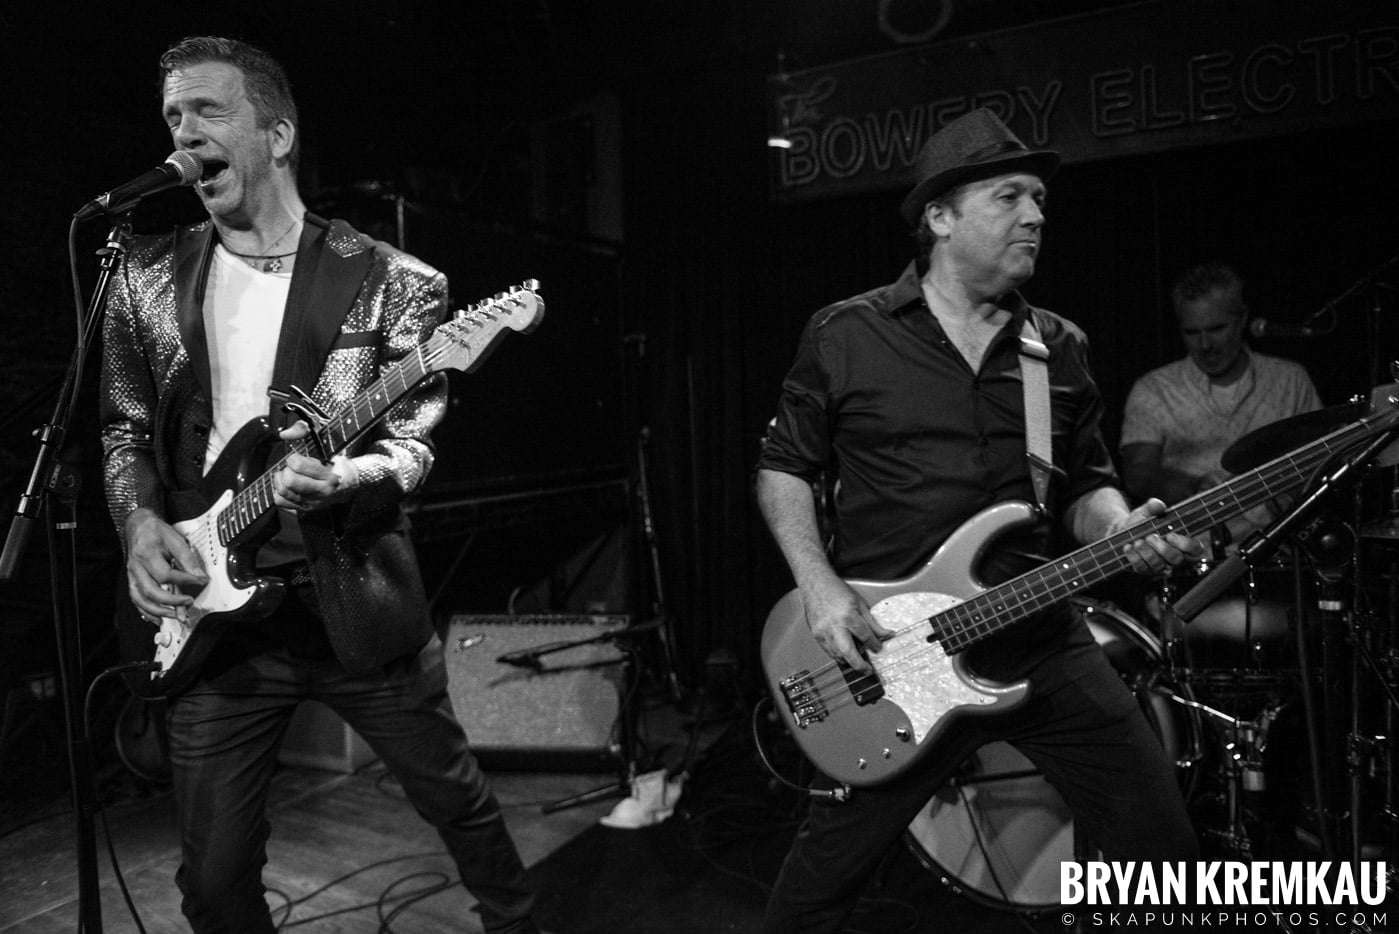 The Push Stars @ The Bowery Electric, NYC - 9.29.17 (22)